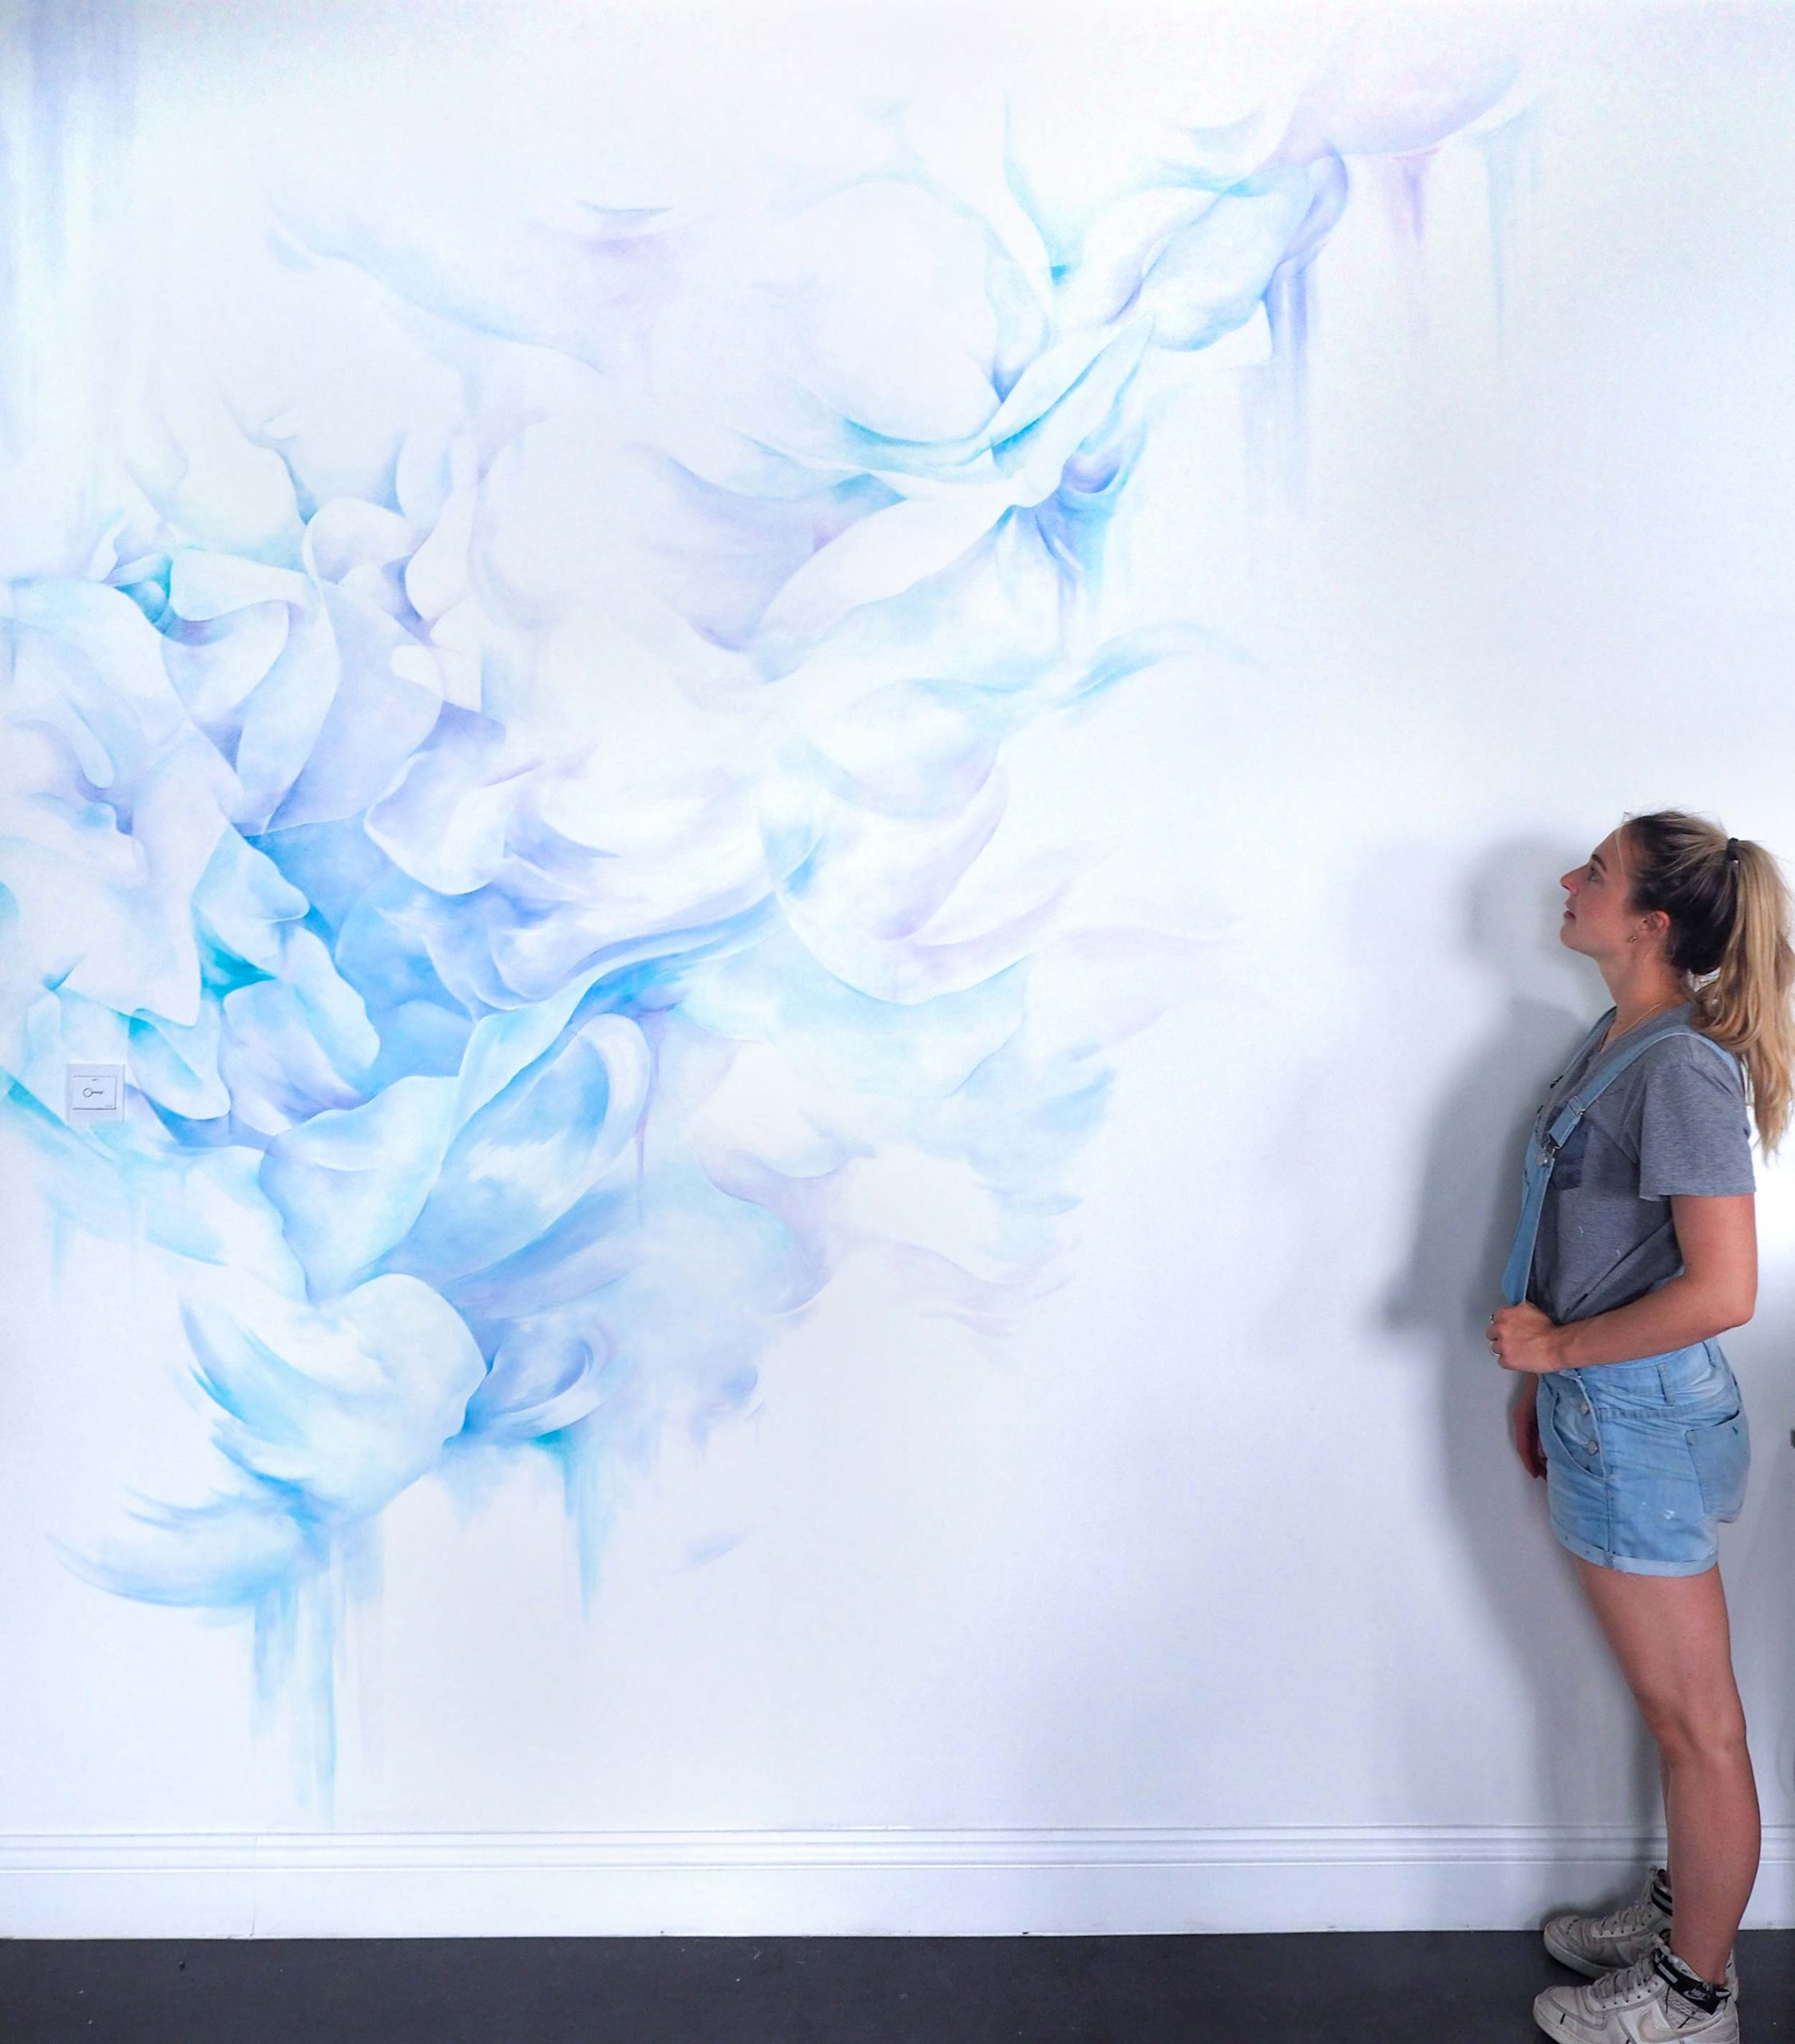 Alicia McFadzean mural painter South Africa